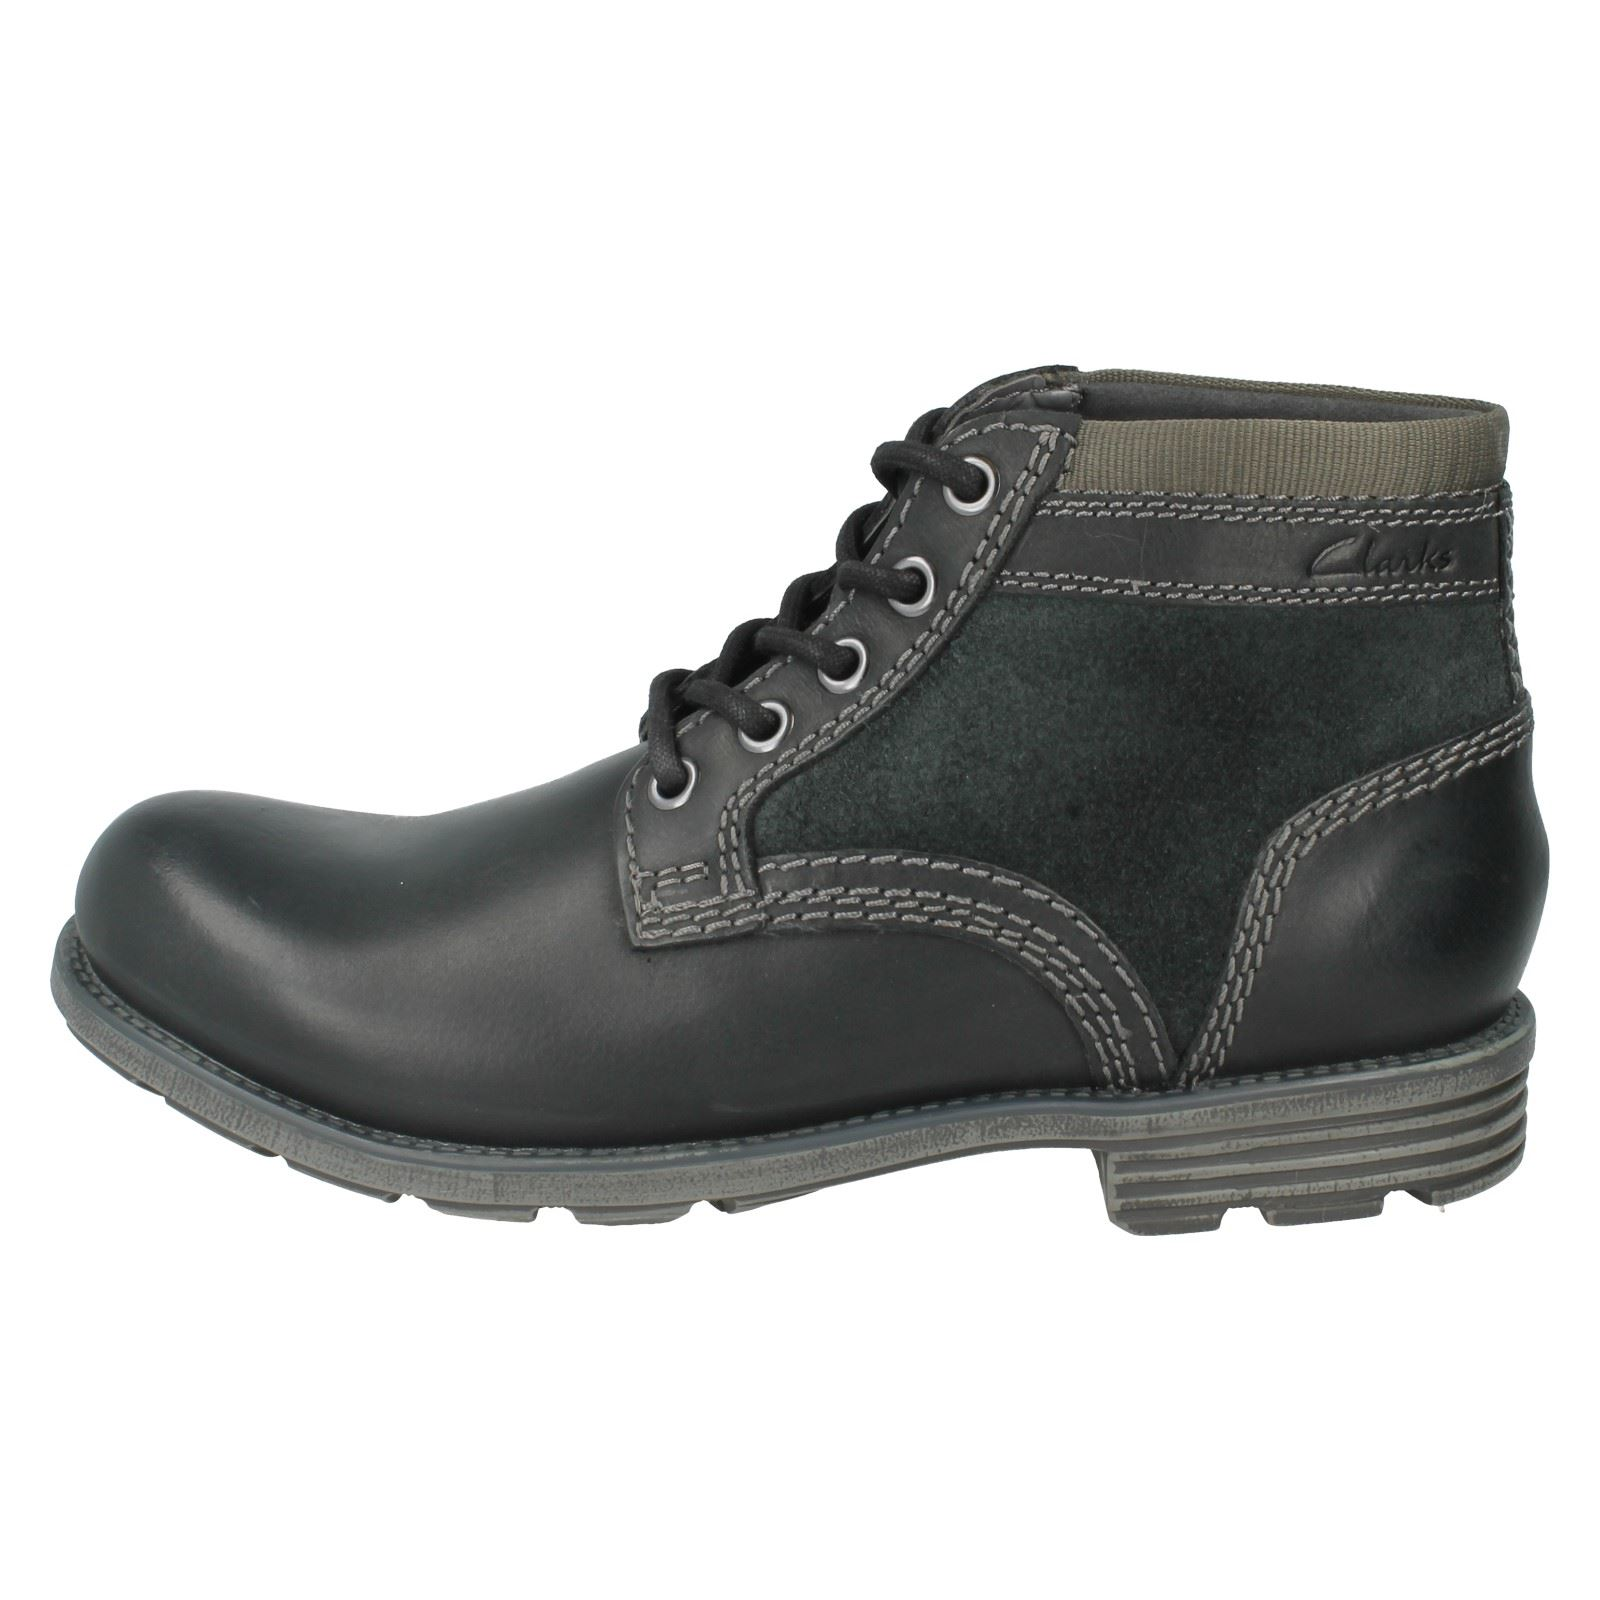 Hombres Clarks Casual Ankle botas Label Label Label -  Darian Mid f9c840